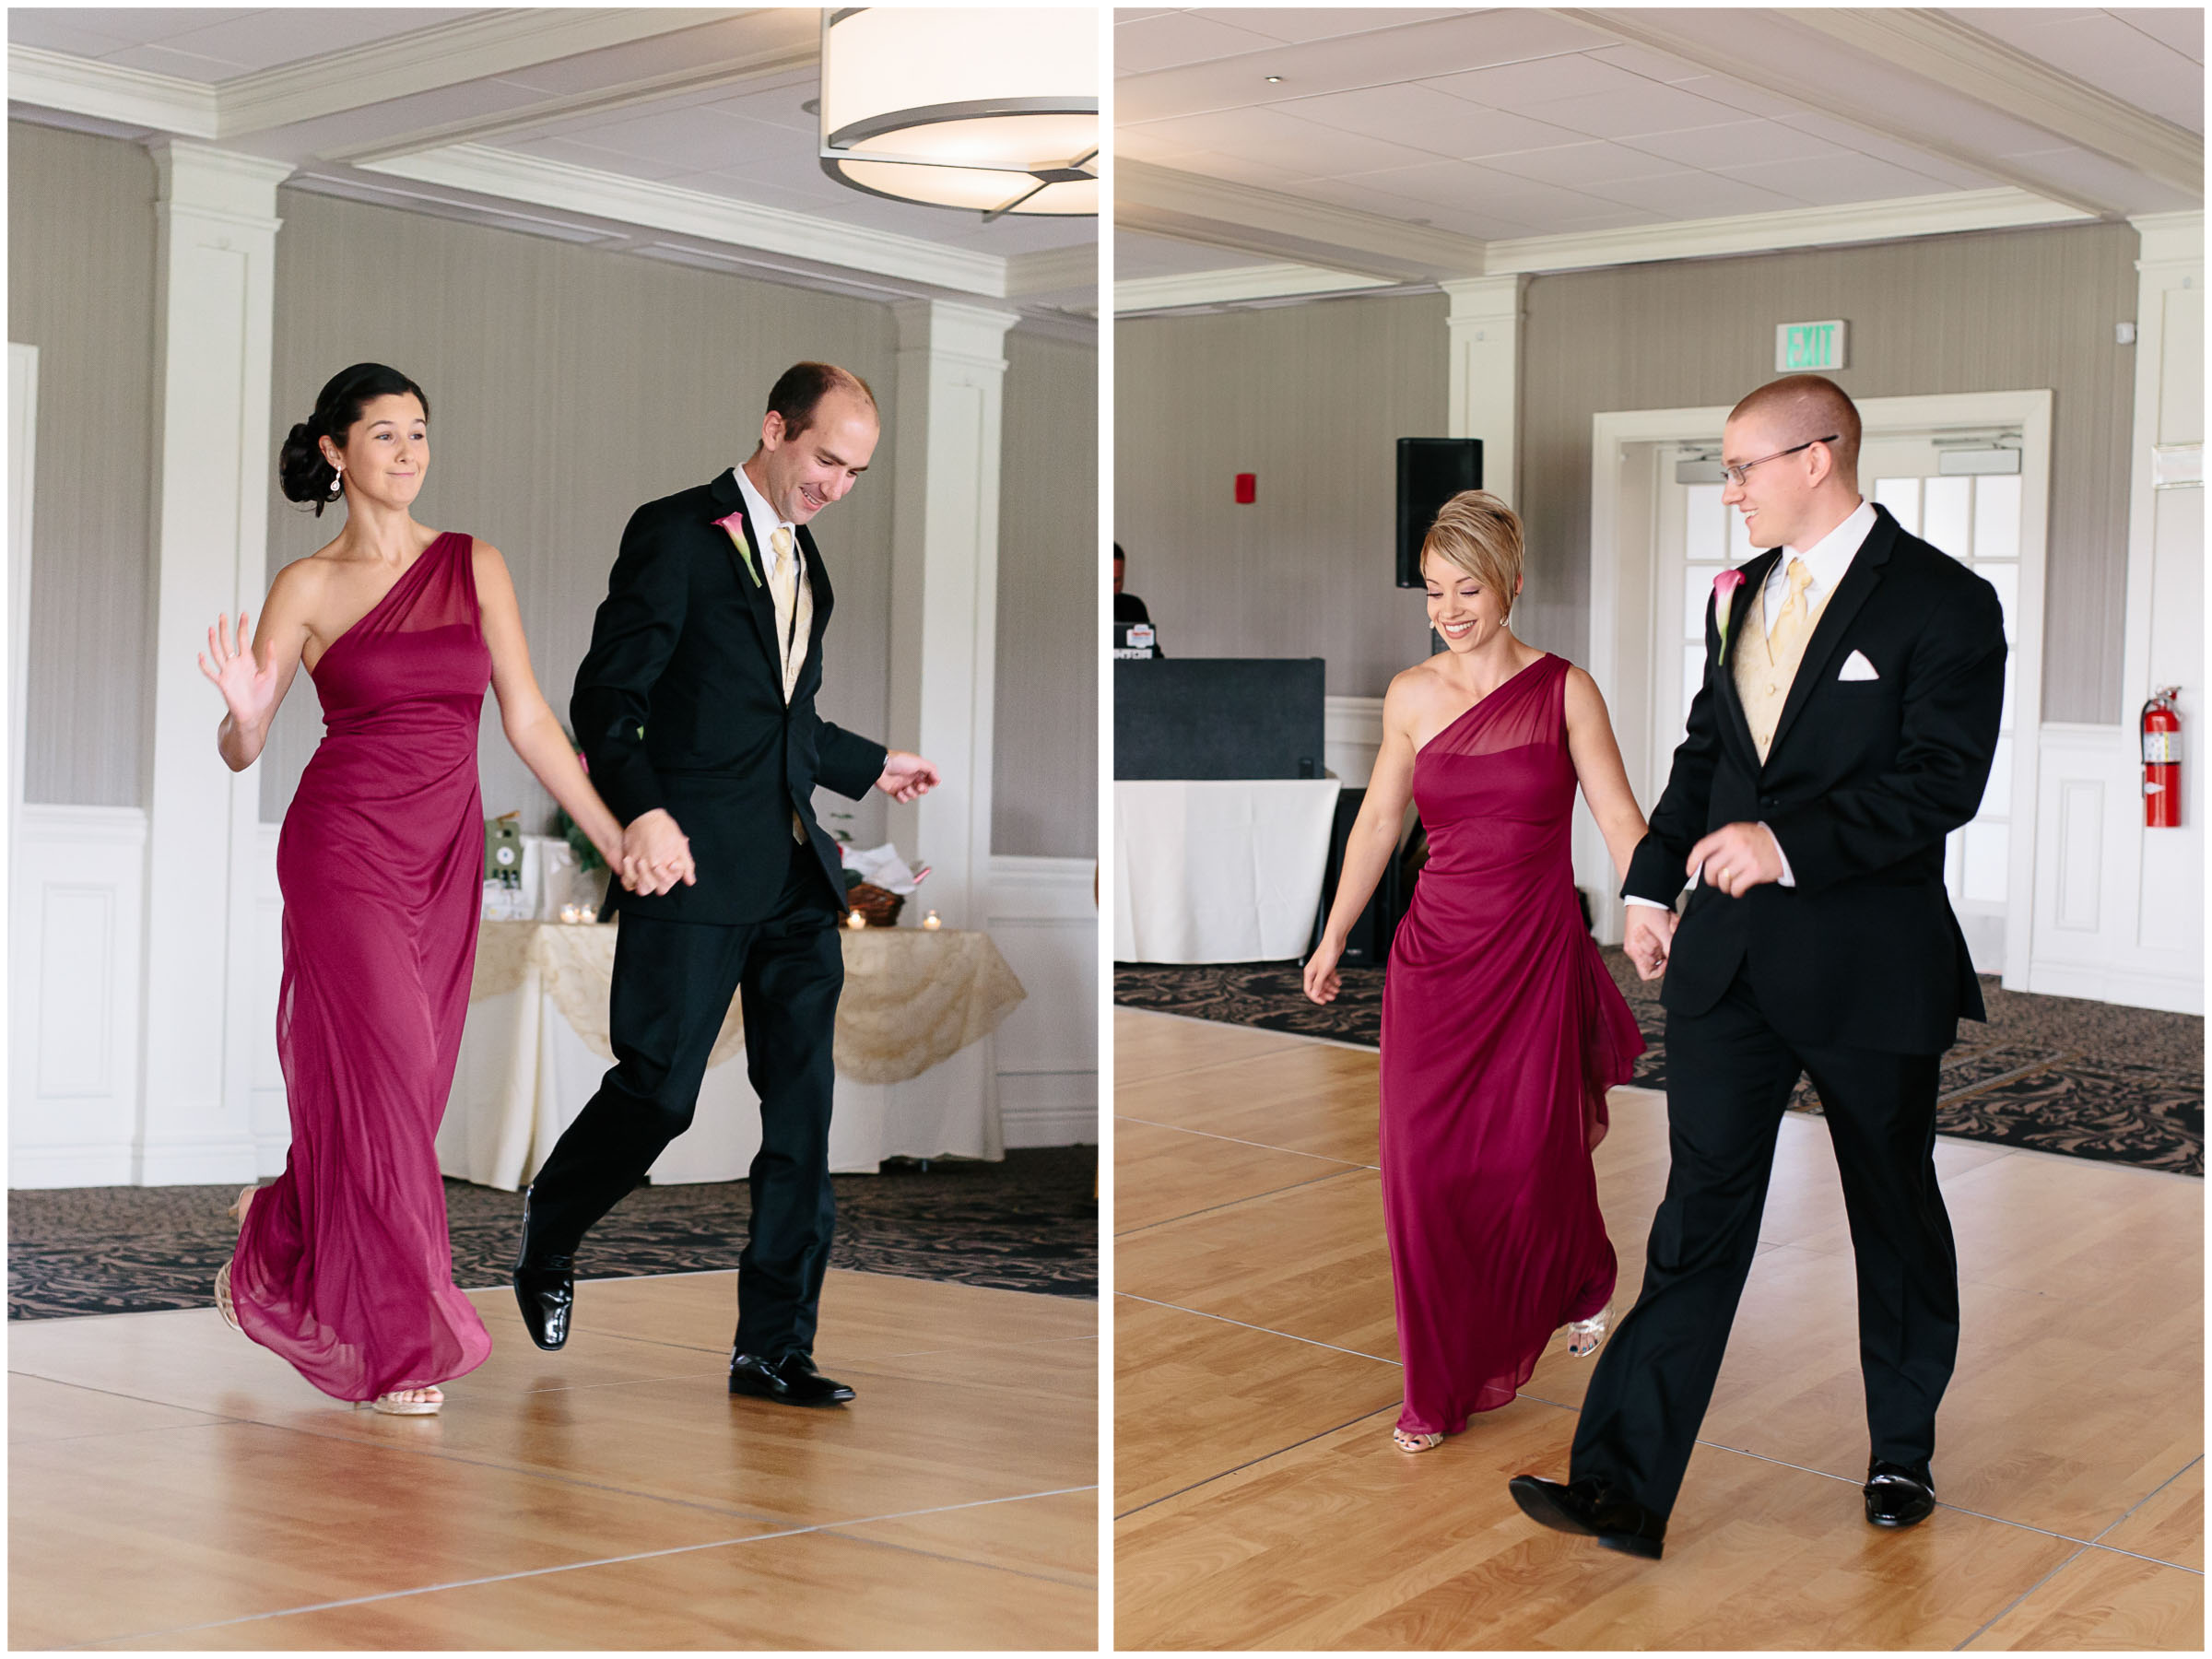 Chic New Hampshire Wedding at Manchester Country Club Bedford - dancing wedding party